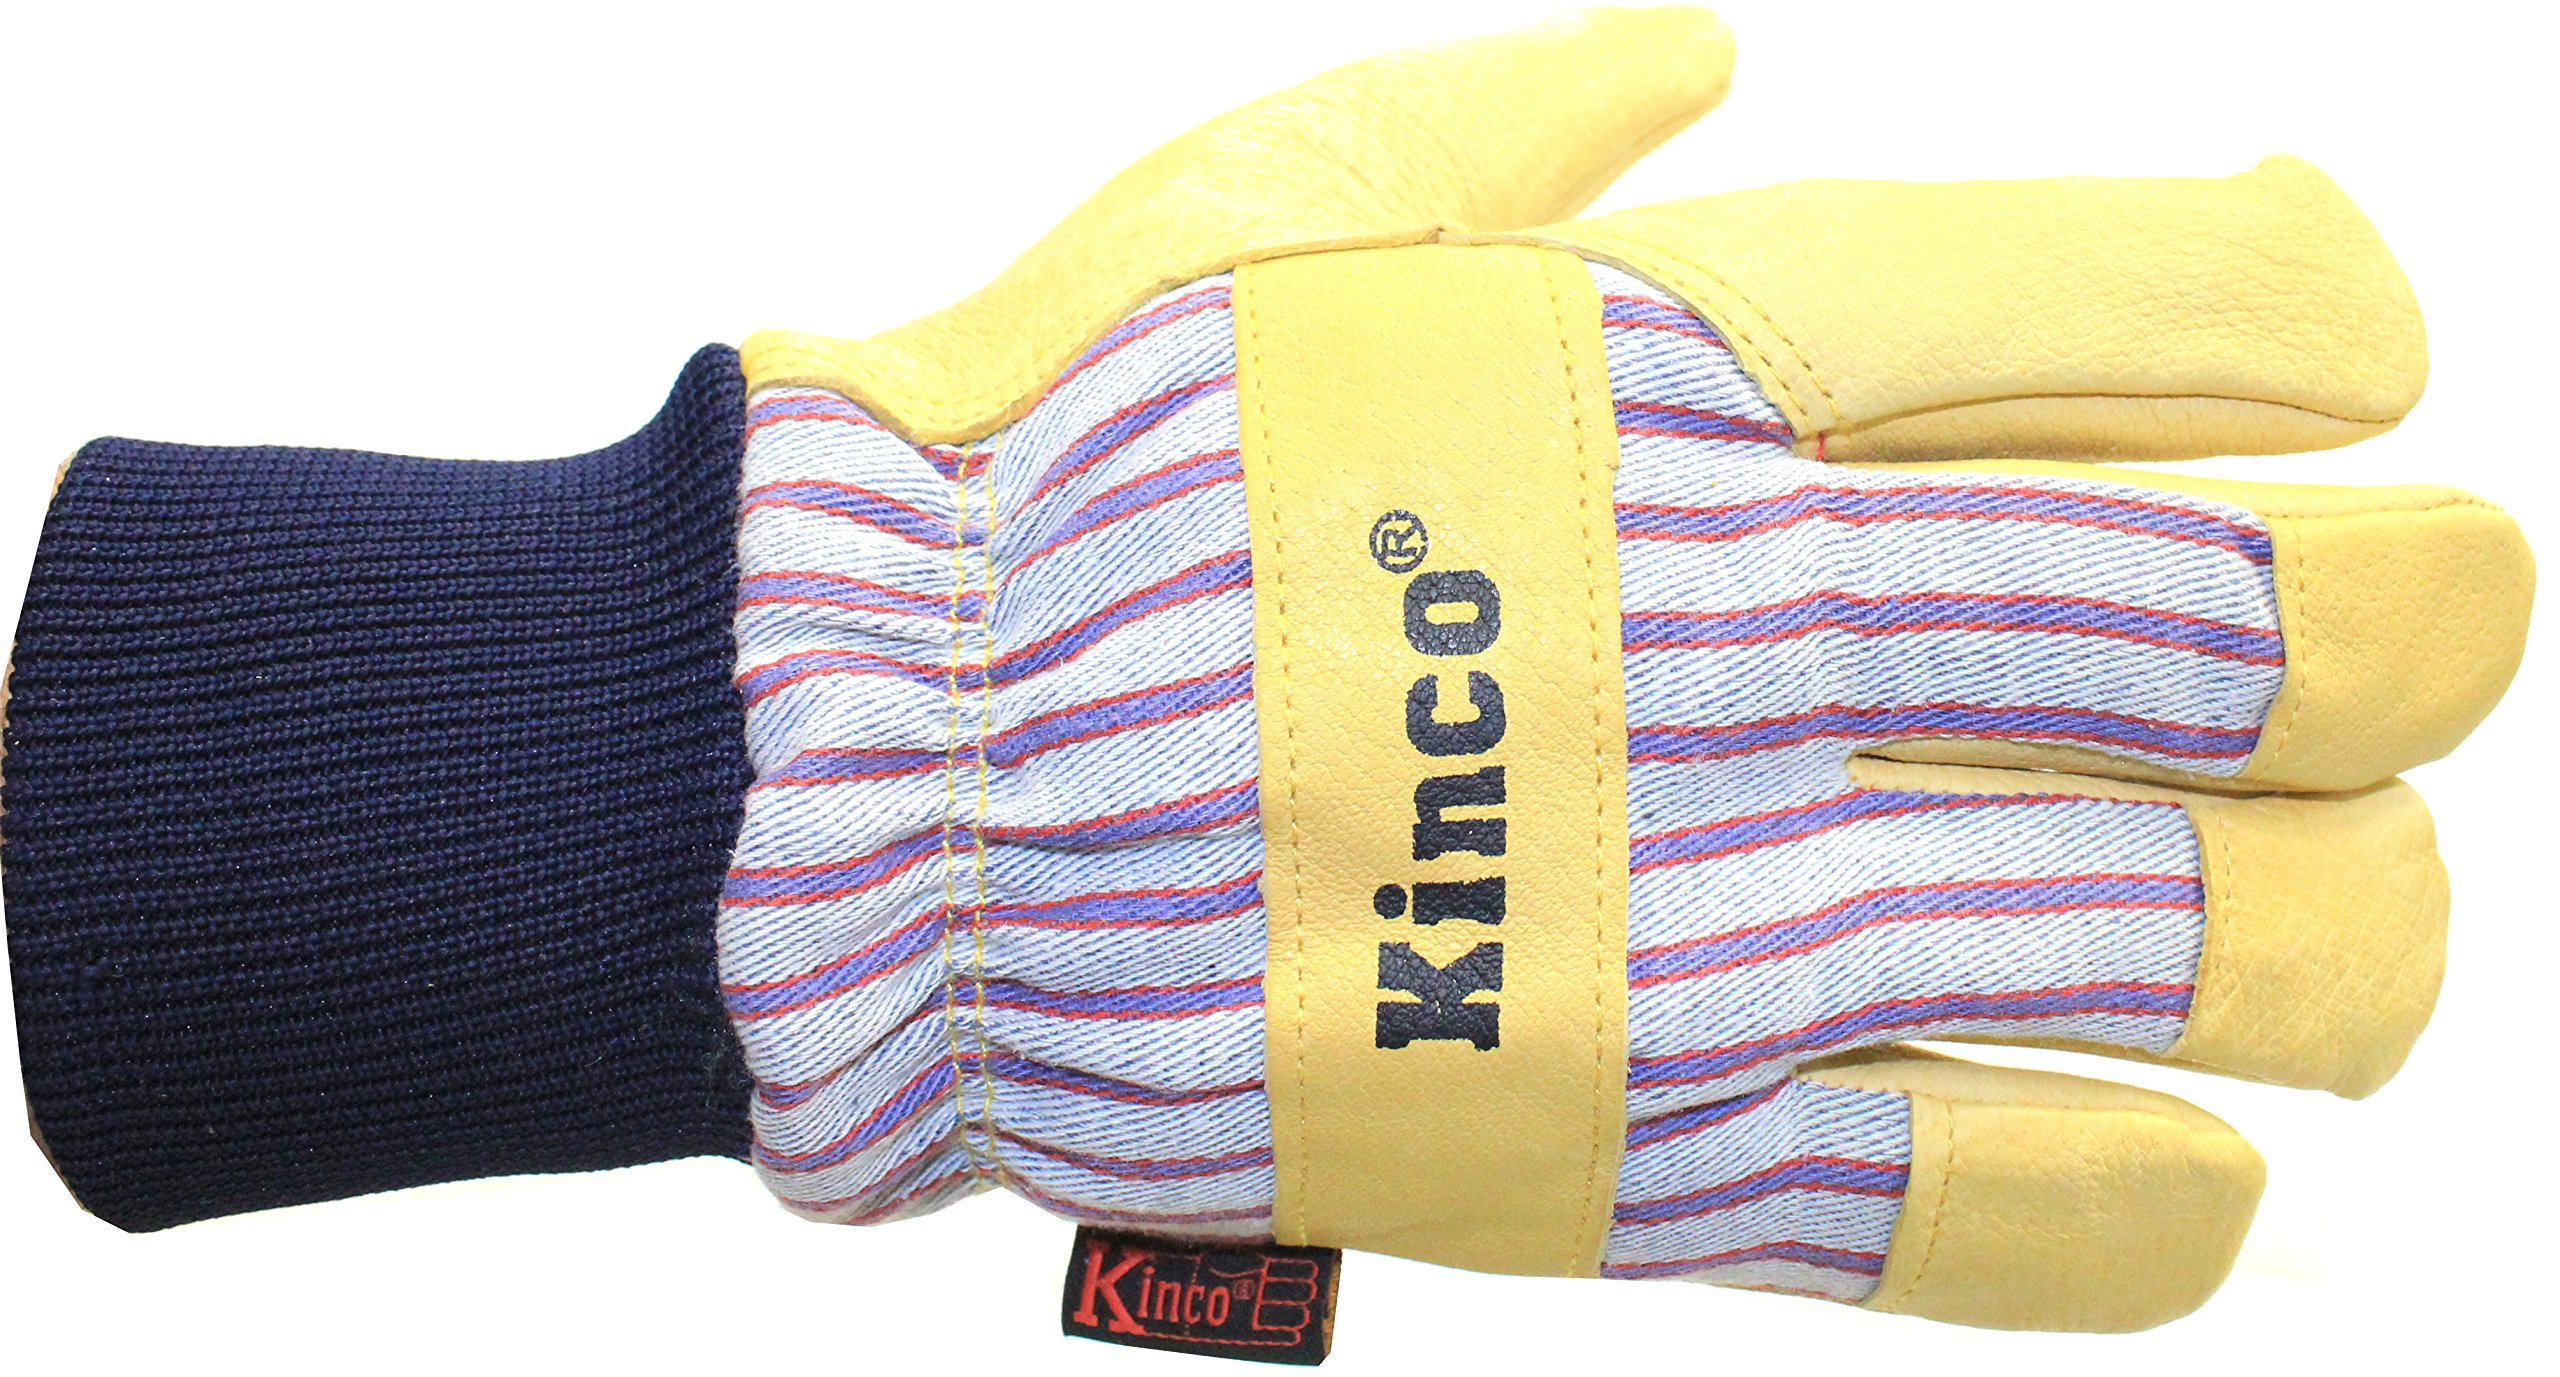 Kinco 1927KW Lined Grain Pigskin Leather Glove with Knit Wrist, Work, Large, Palomino (Pack of 6 Pairs) by KINCO INTERNATIONAL (Image #3)